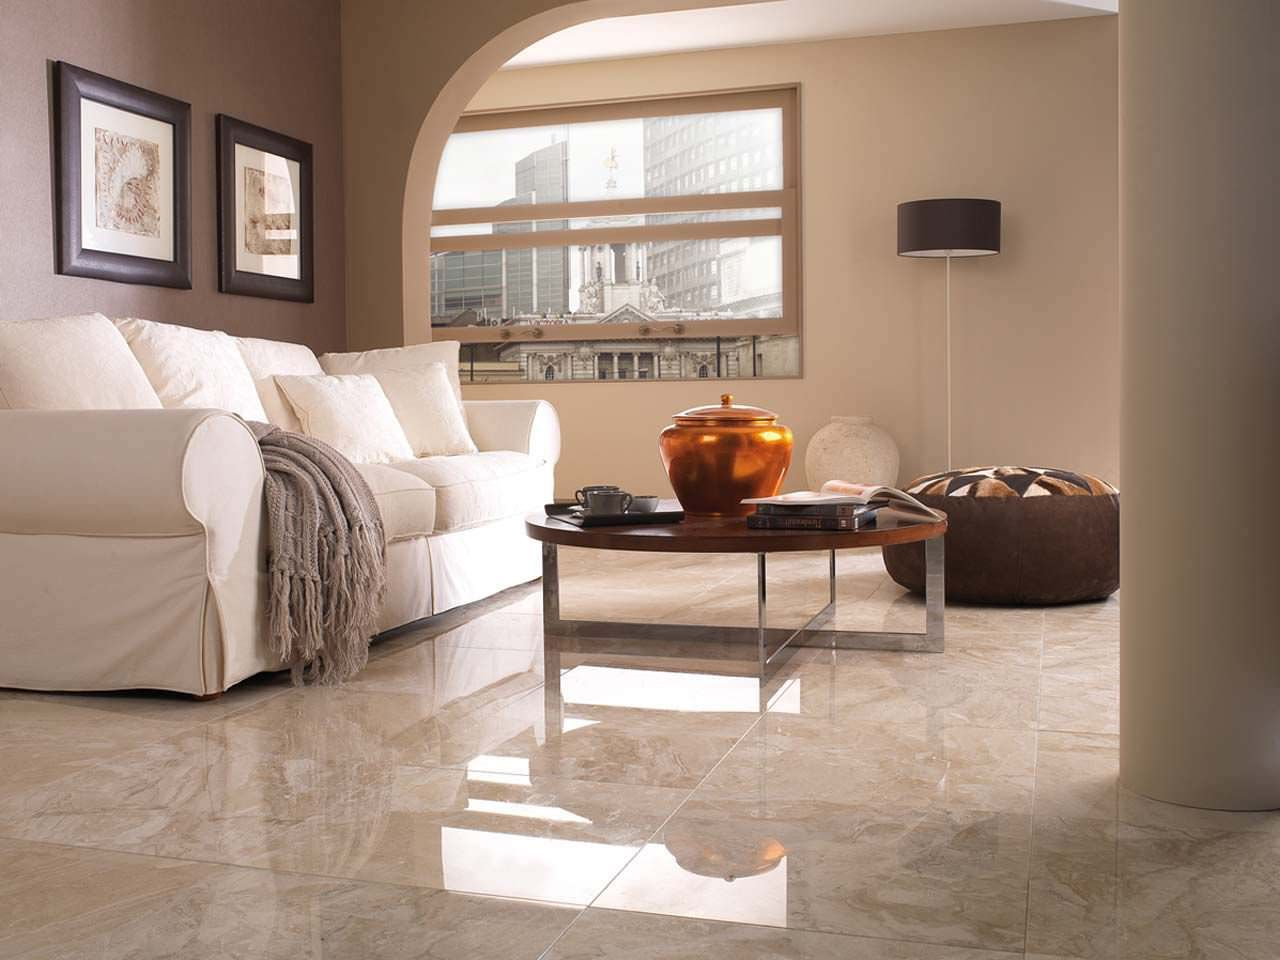 Discover All The Information About The Product Living Room Tile / Floor /  Marble / High Gloss MARMOL NAIROBI CREMA PULIDO BIOPROT   Porcelanosa And  Find ... Part 37